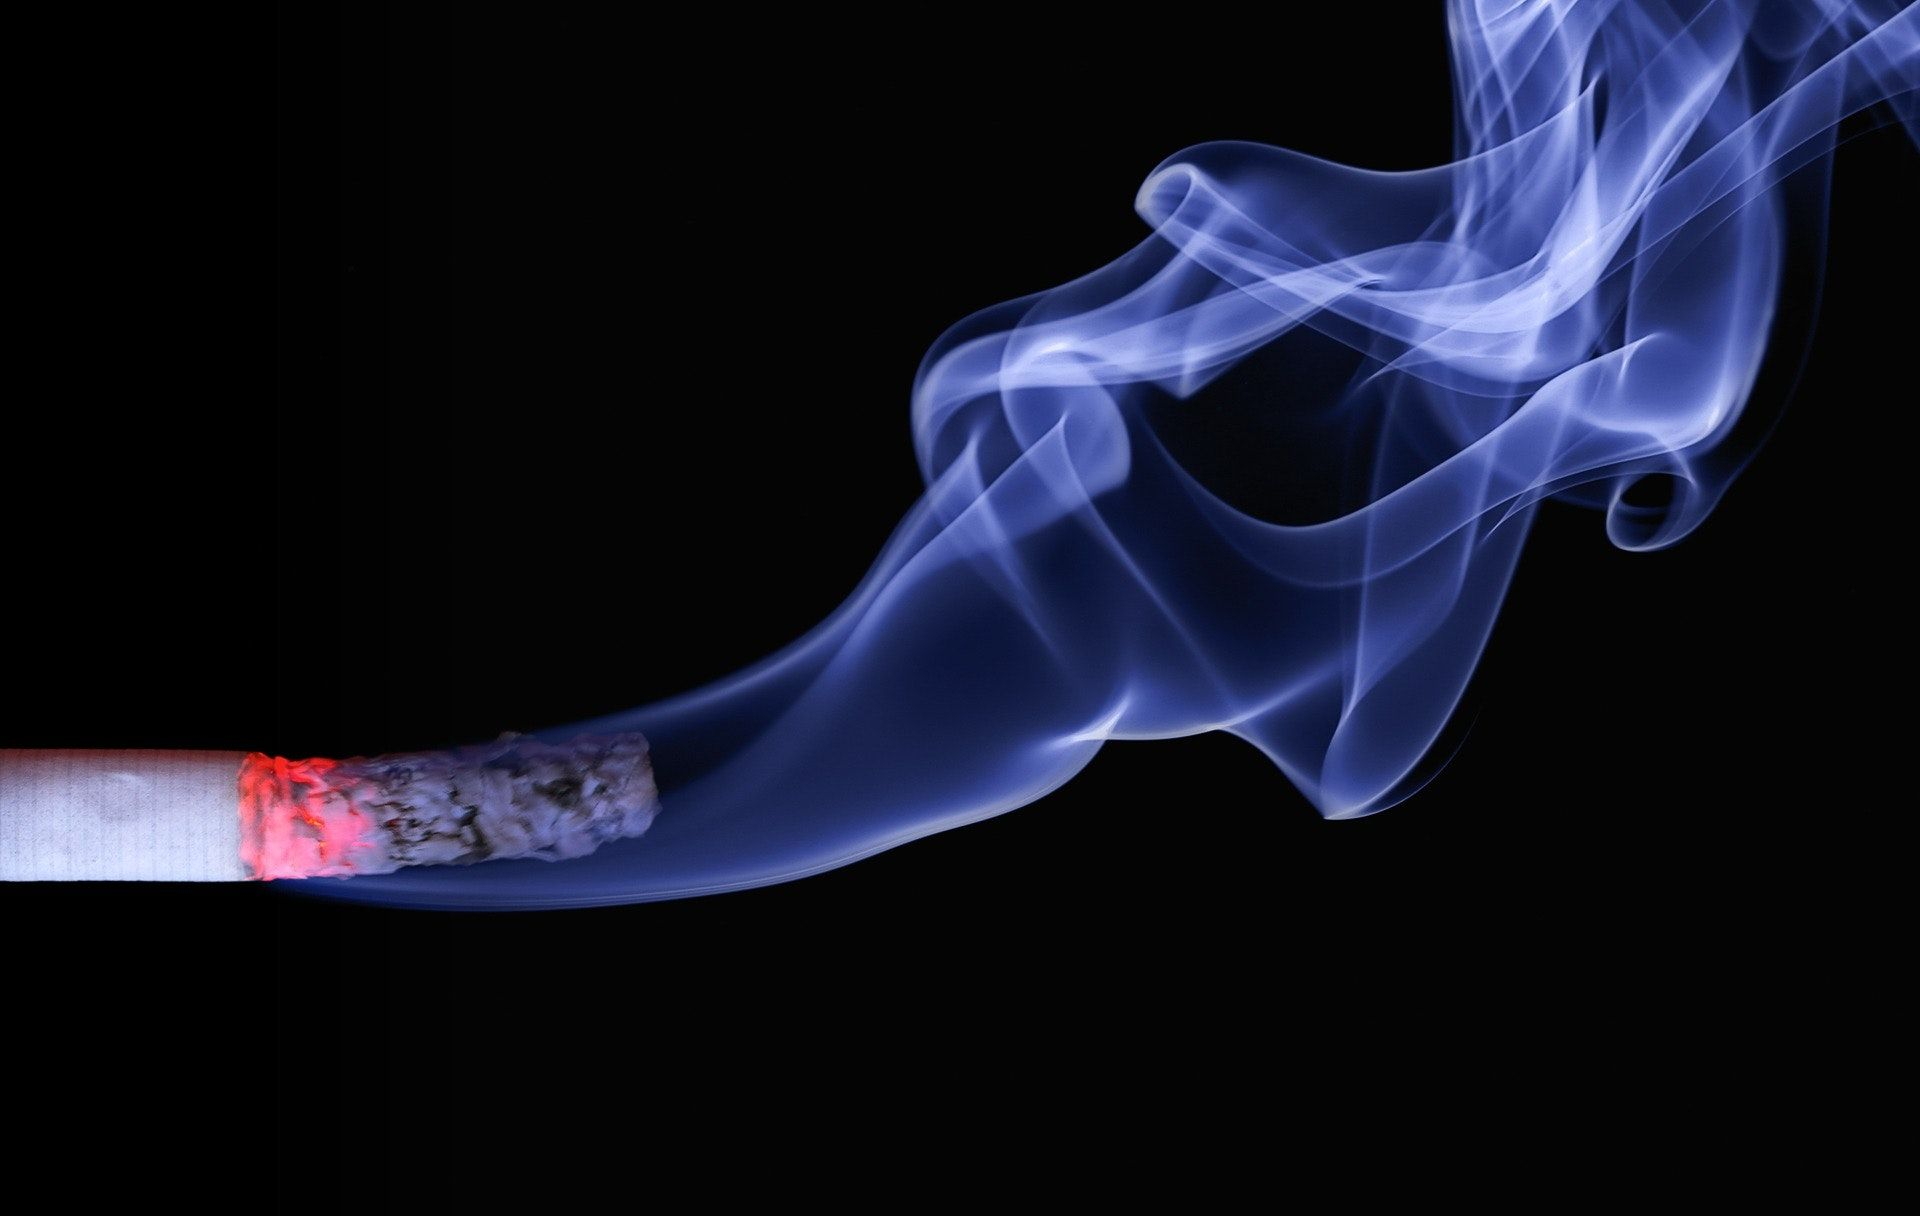 1920x1216 Lighted Cigarette Stick and White Smoke Wallpaper · Free ...